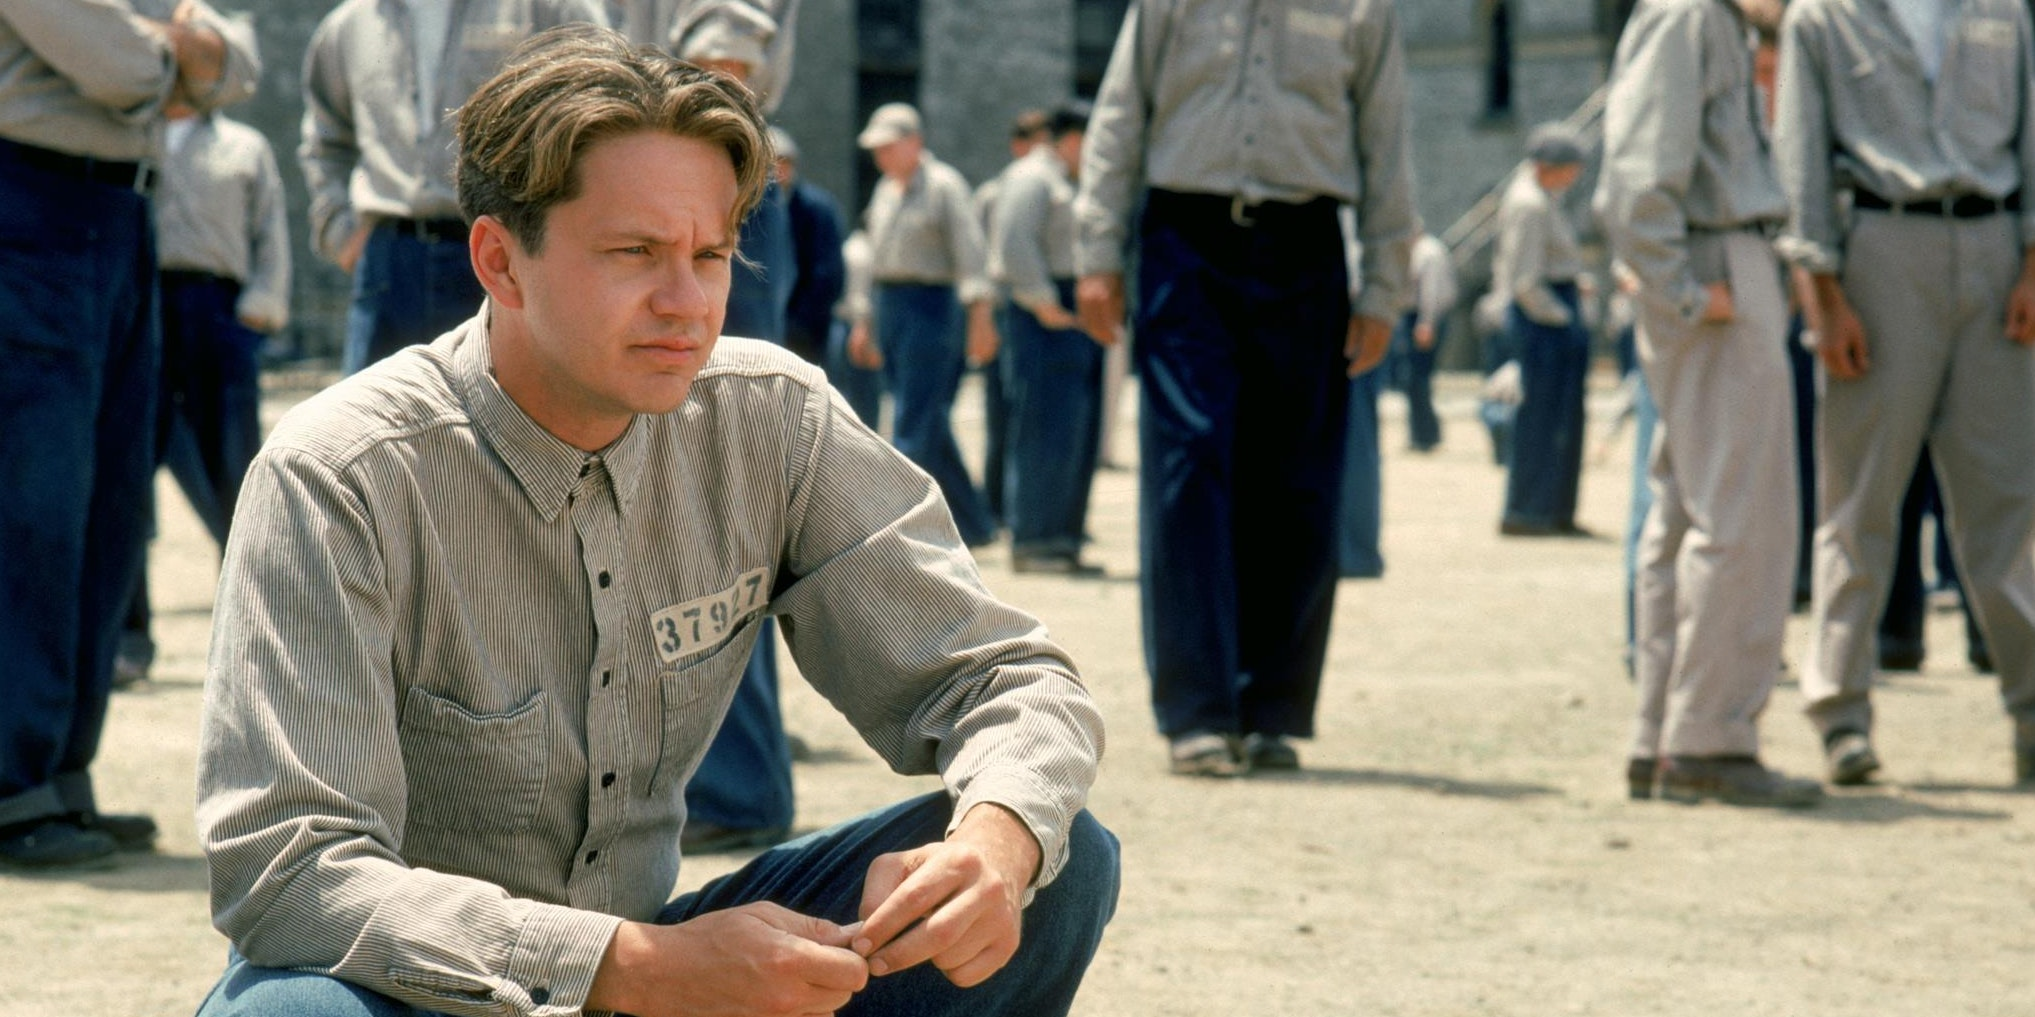 psychology in films shawshank redemption personality theory The shawshank redemption (1994): one of the most popular films ever made,  perhaps due to the ease an individual can relate to the story of a man wrongfully .